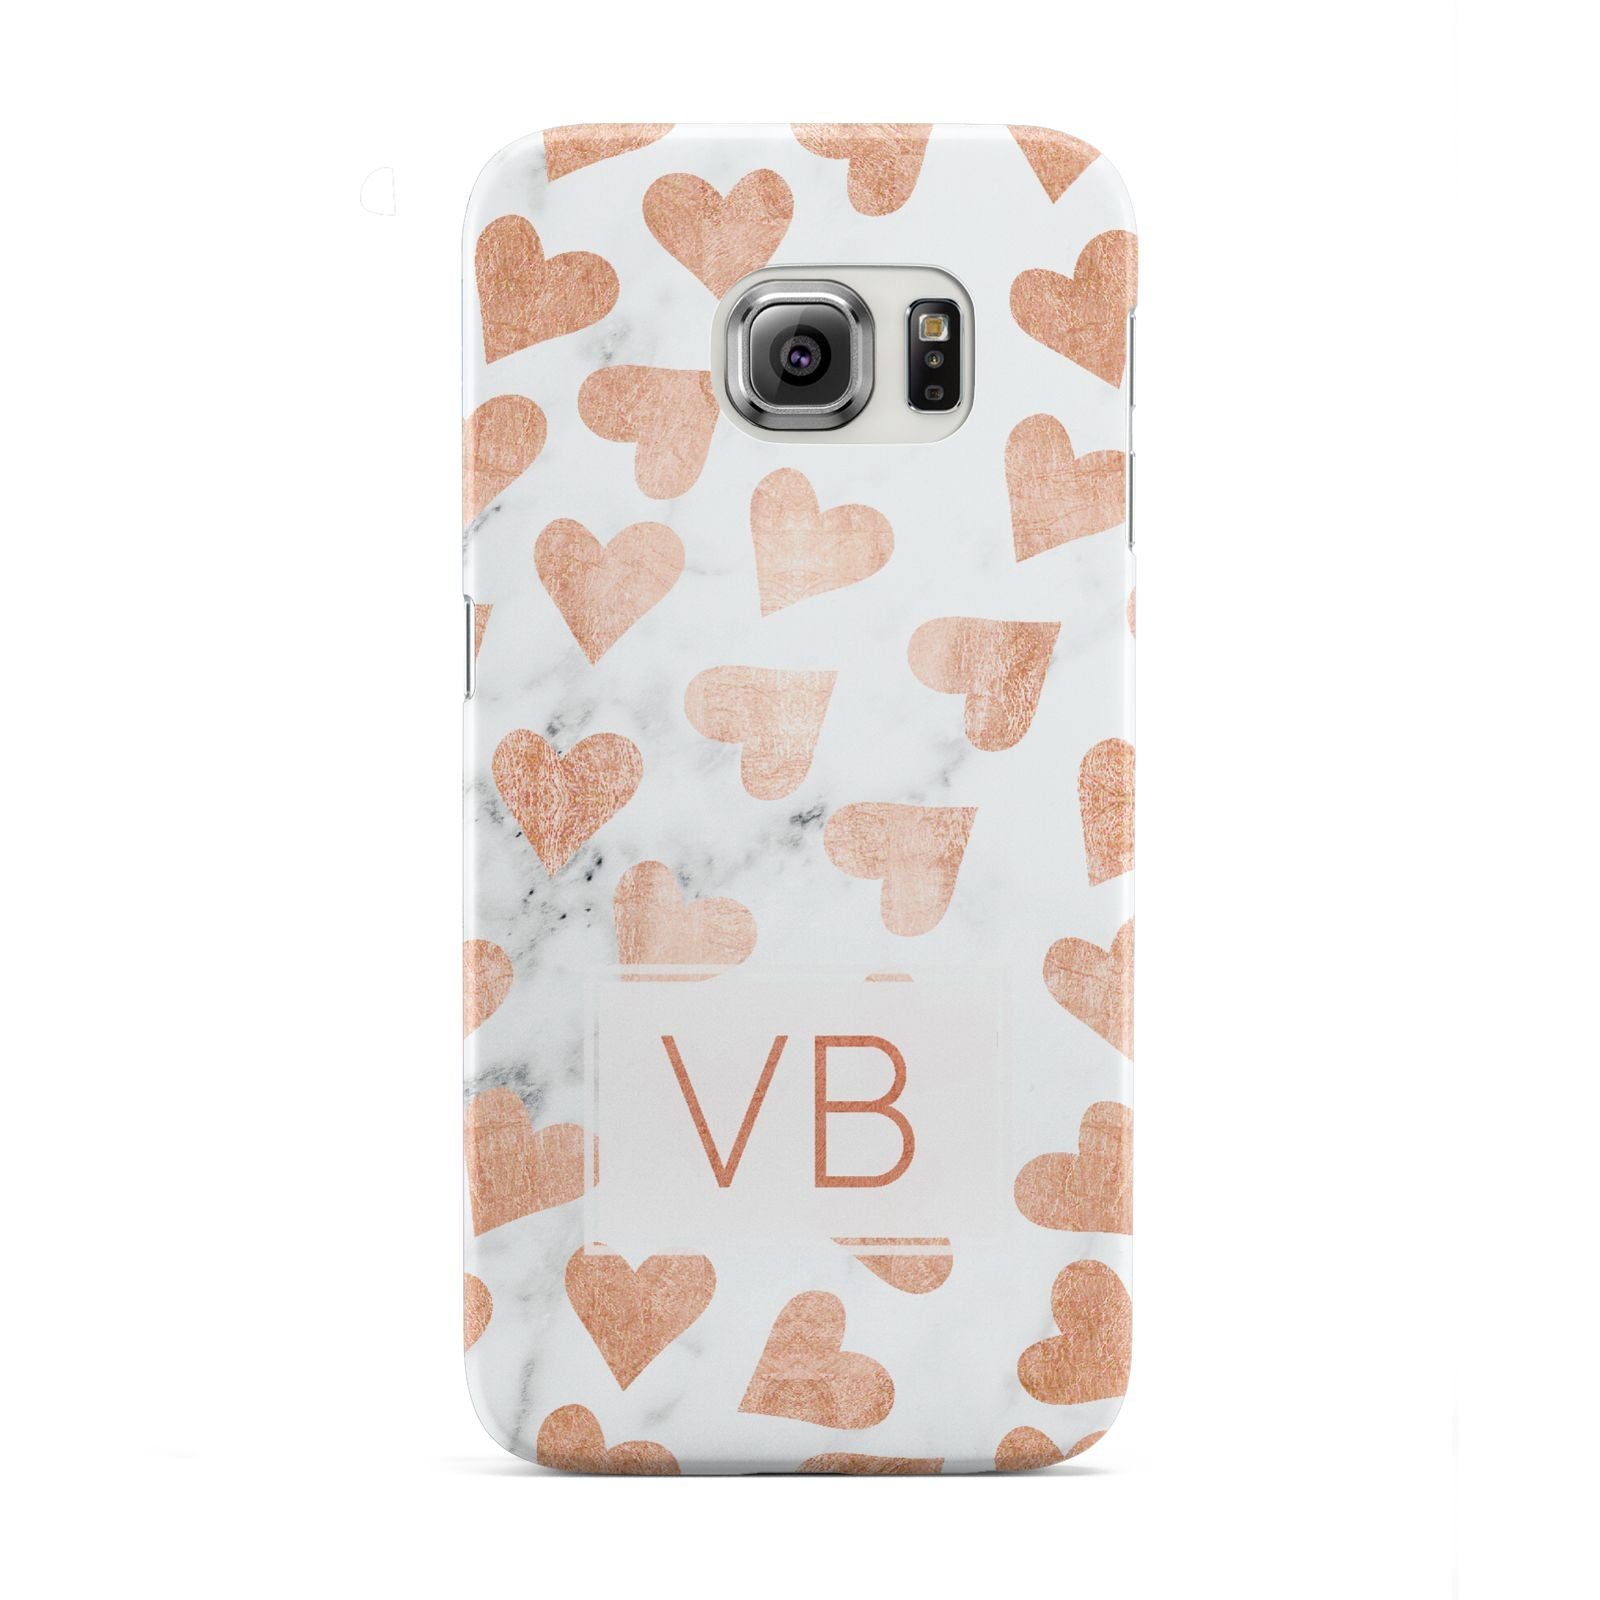 Personalised Heart Initialled Marble Samsung Galaxy S6 Edge Case